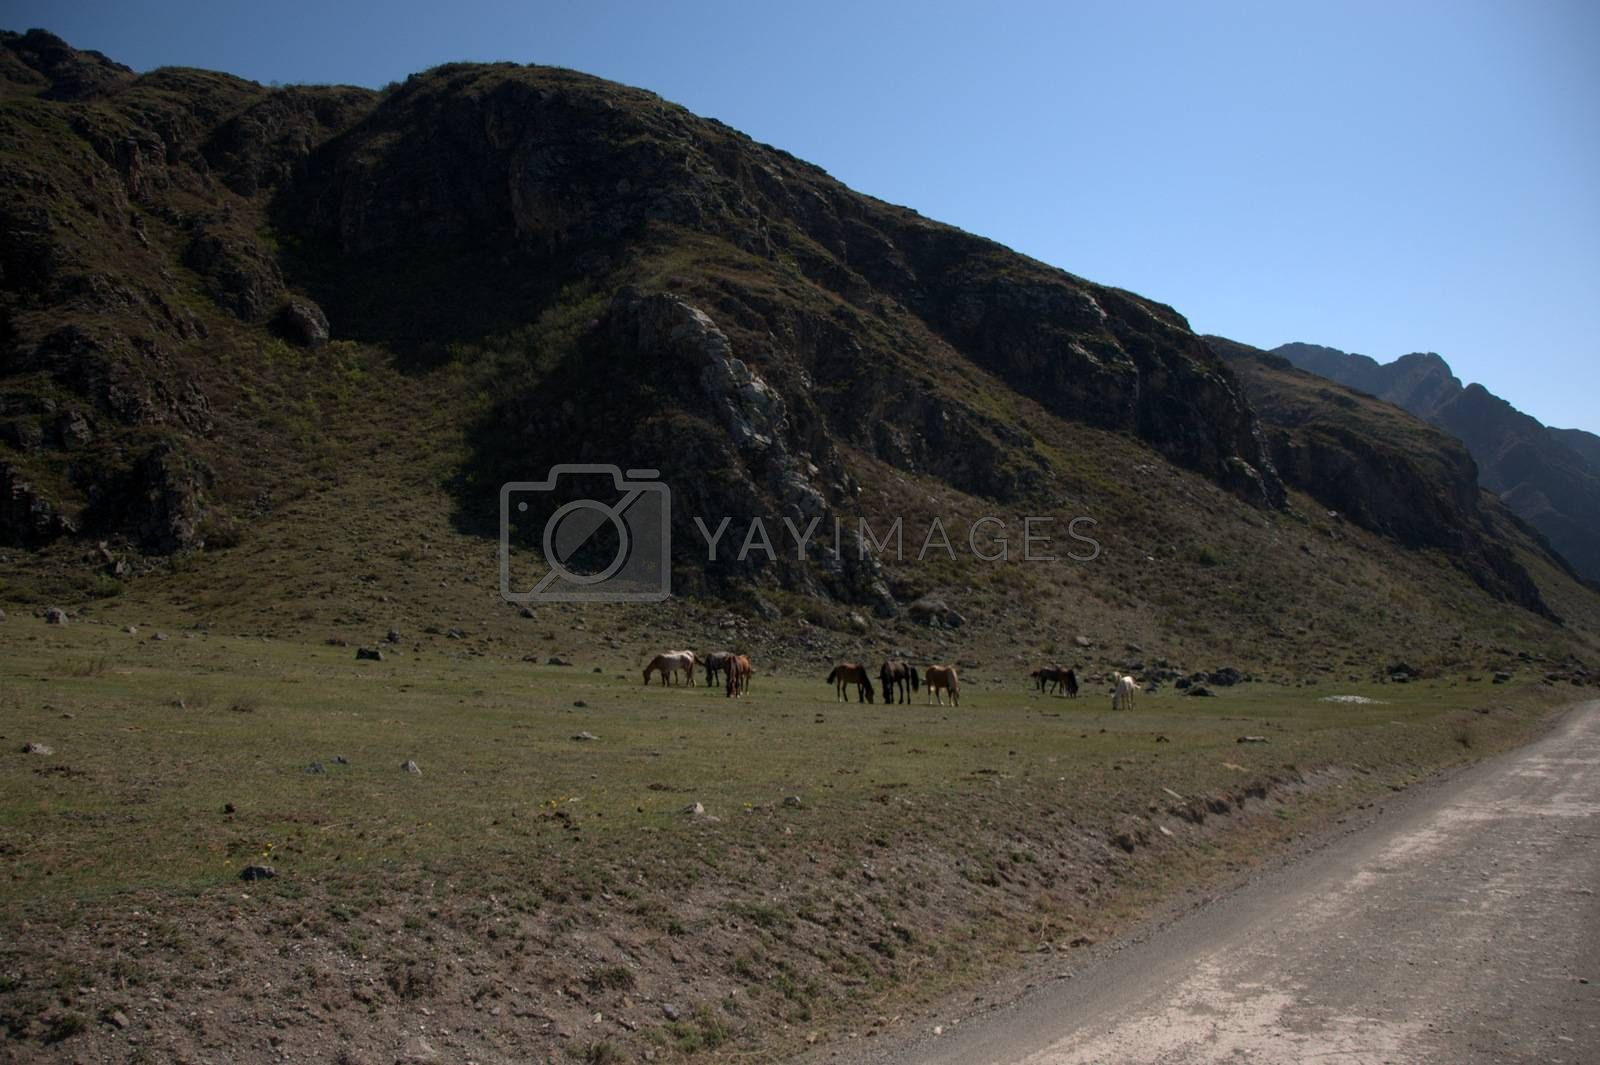 A dirt road runs along the bed of the Katun mountain river at the foot of the high hills where horses graze. Altai, Siberia, Russia.